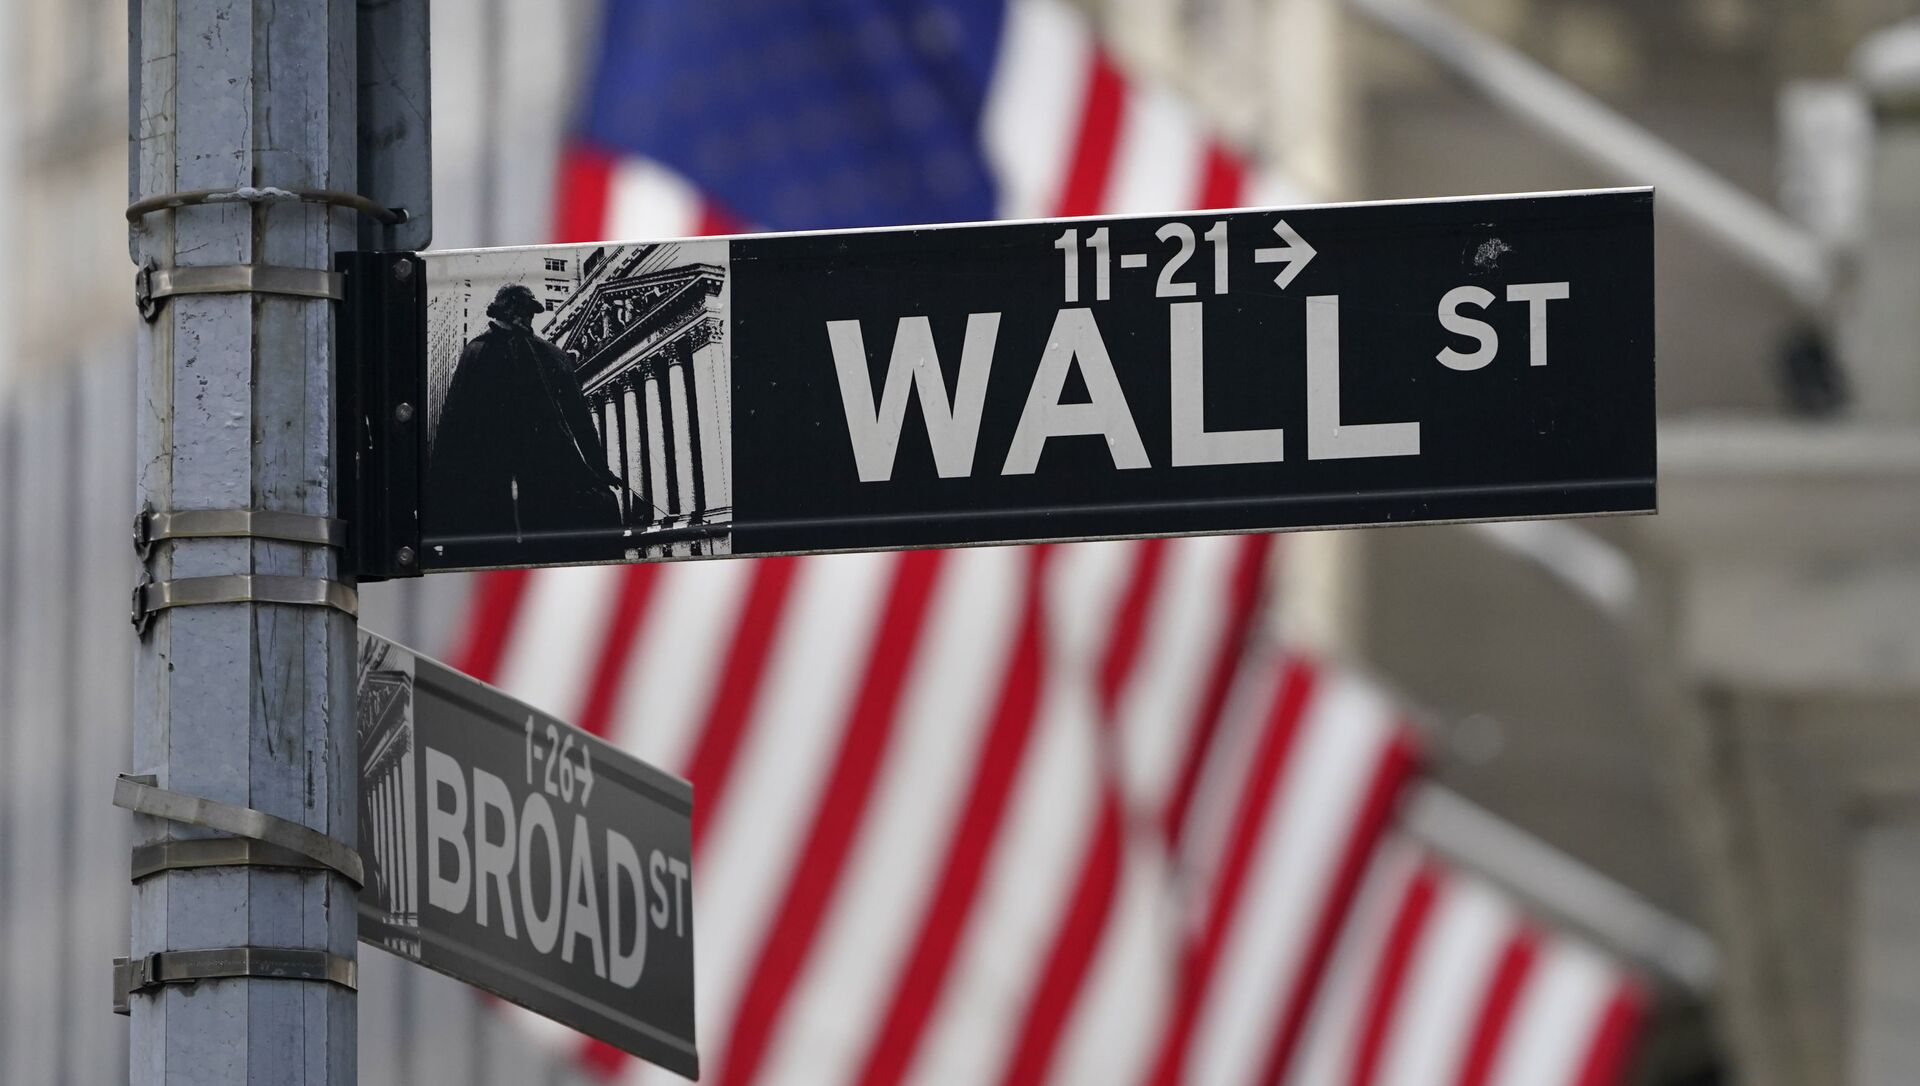 In this Nov. 23, 2020, photo, a street sign is displayed at the New York Stock Exchange in New York. S&P DJ Indices is removing 21 Chinese companies from its indexes, or groups of stocks and bonds used to track financial market movements, after Americans were barred from investing in them as part of a feud with Beijing over technology and security. - Sputnik International, 1920, 23.07.2021